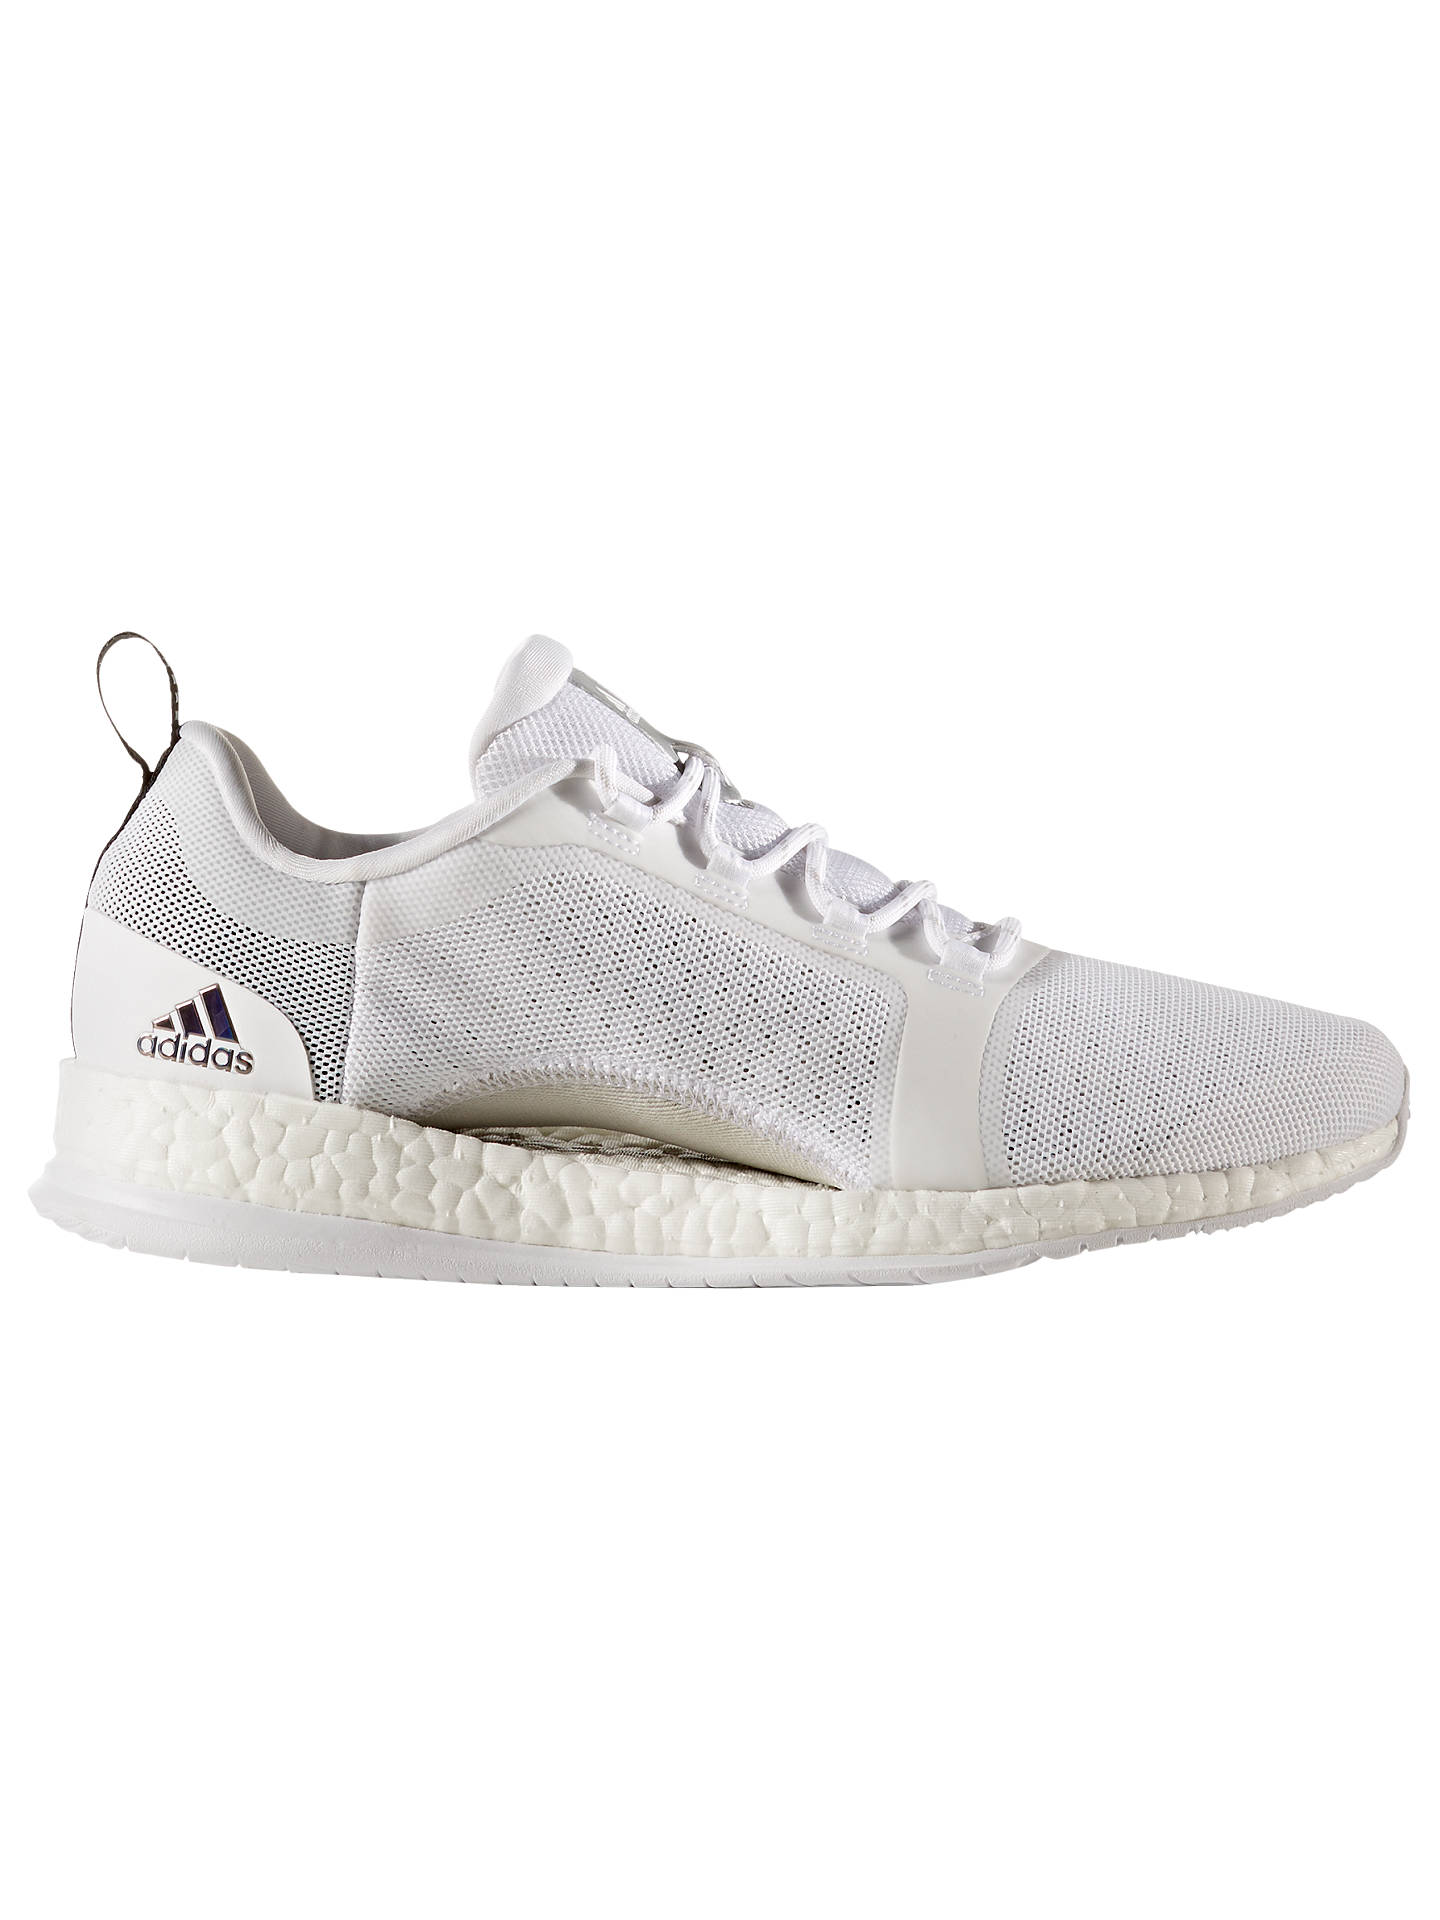 0ef41d65cb022 Buy adidas Pure Boost X 2.0 Women s Training Shoes